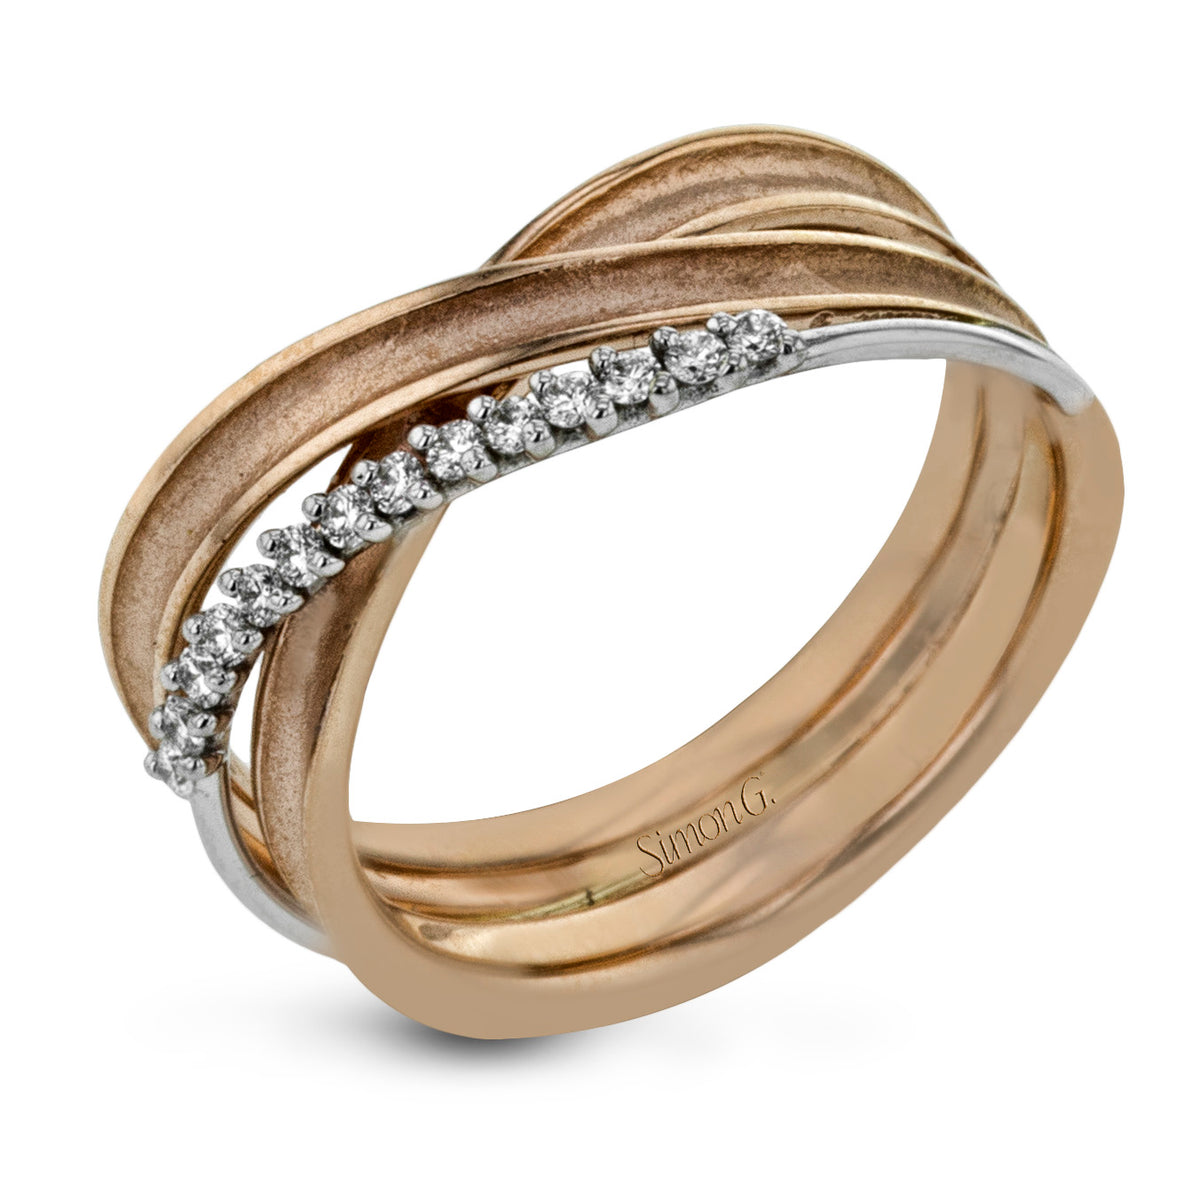 Simon G 18K Two Tone Crossover Design Ring